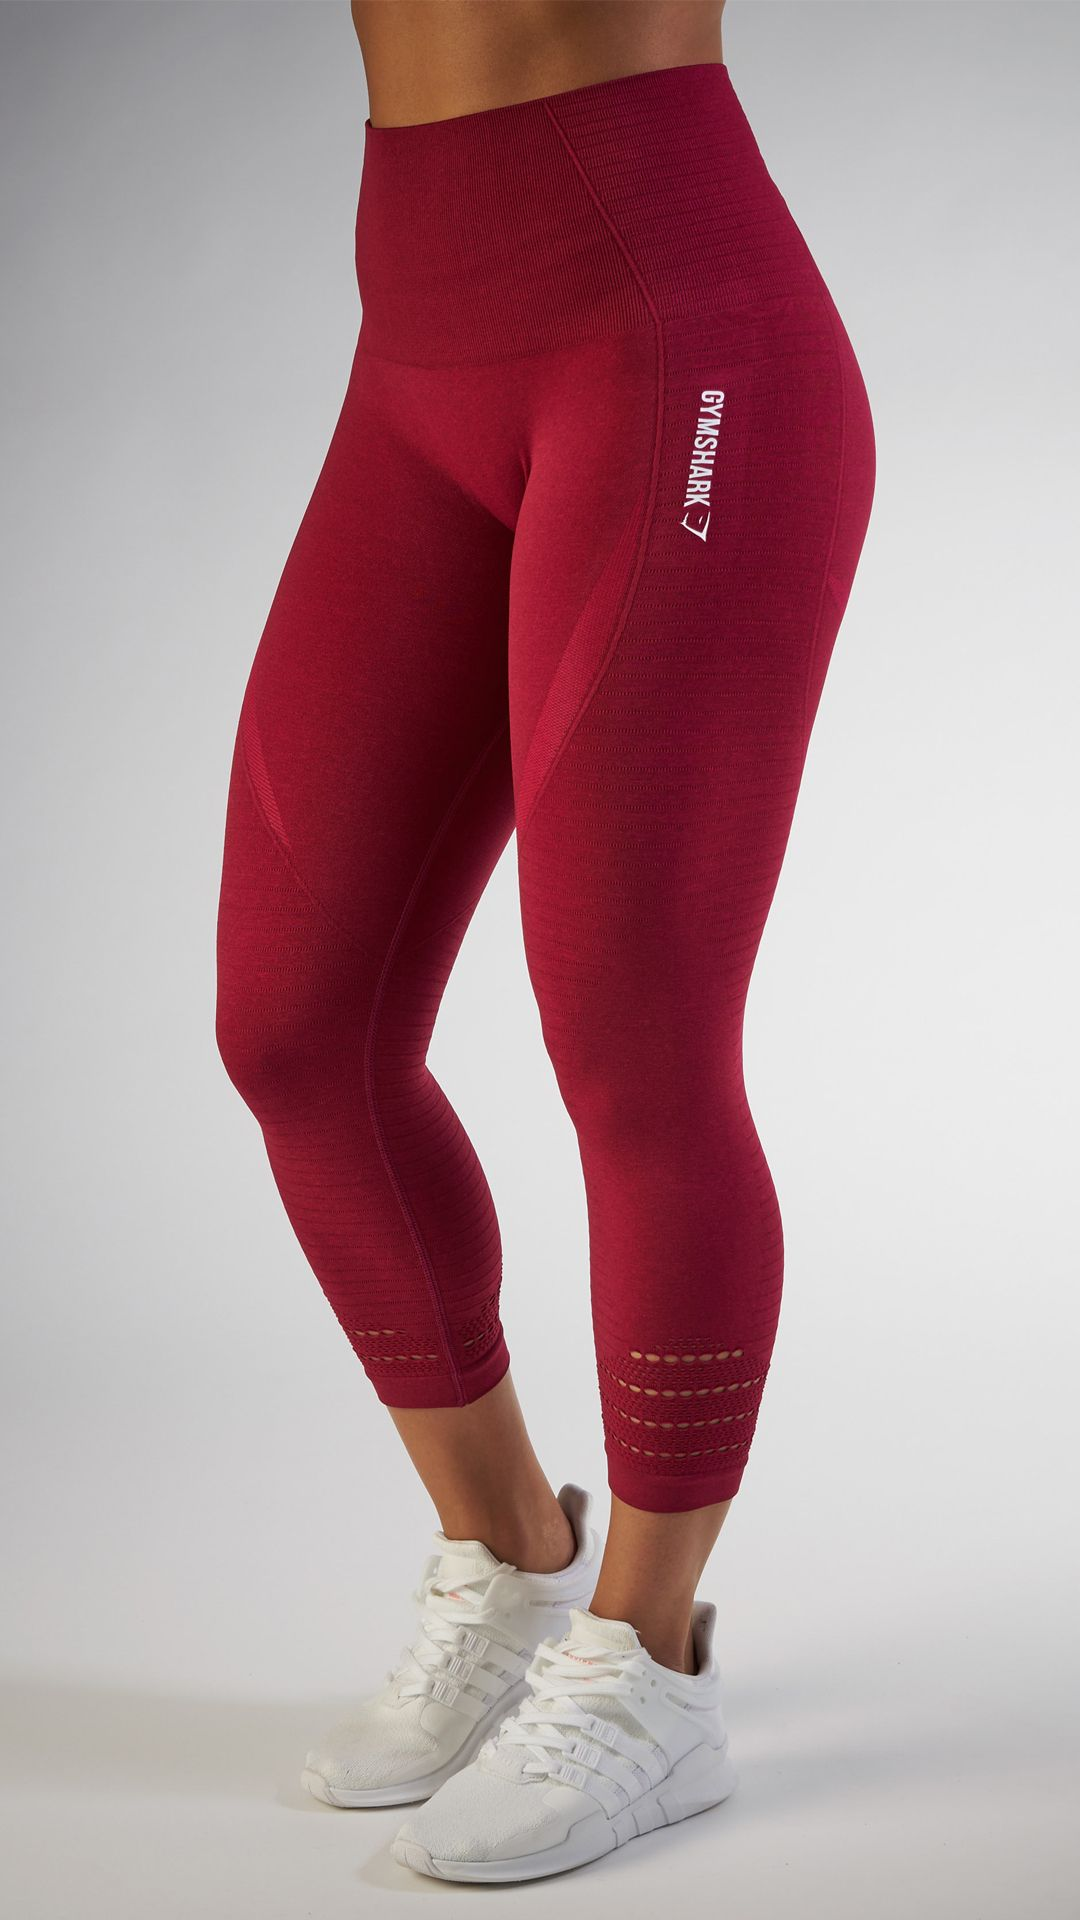 01e98a1be824a With their stunning and form fitting shape, the Seamless High Waisted  Cropped leggings in Beet are beautifully different.